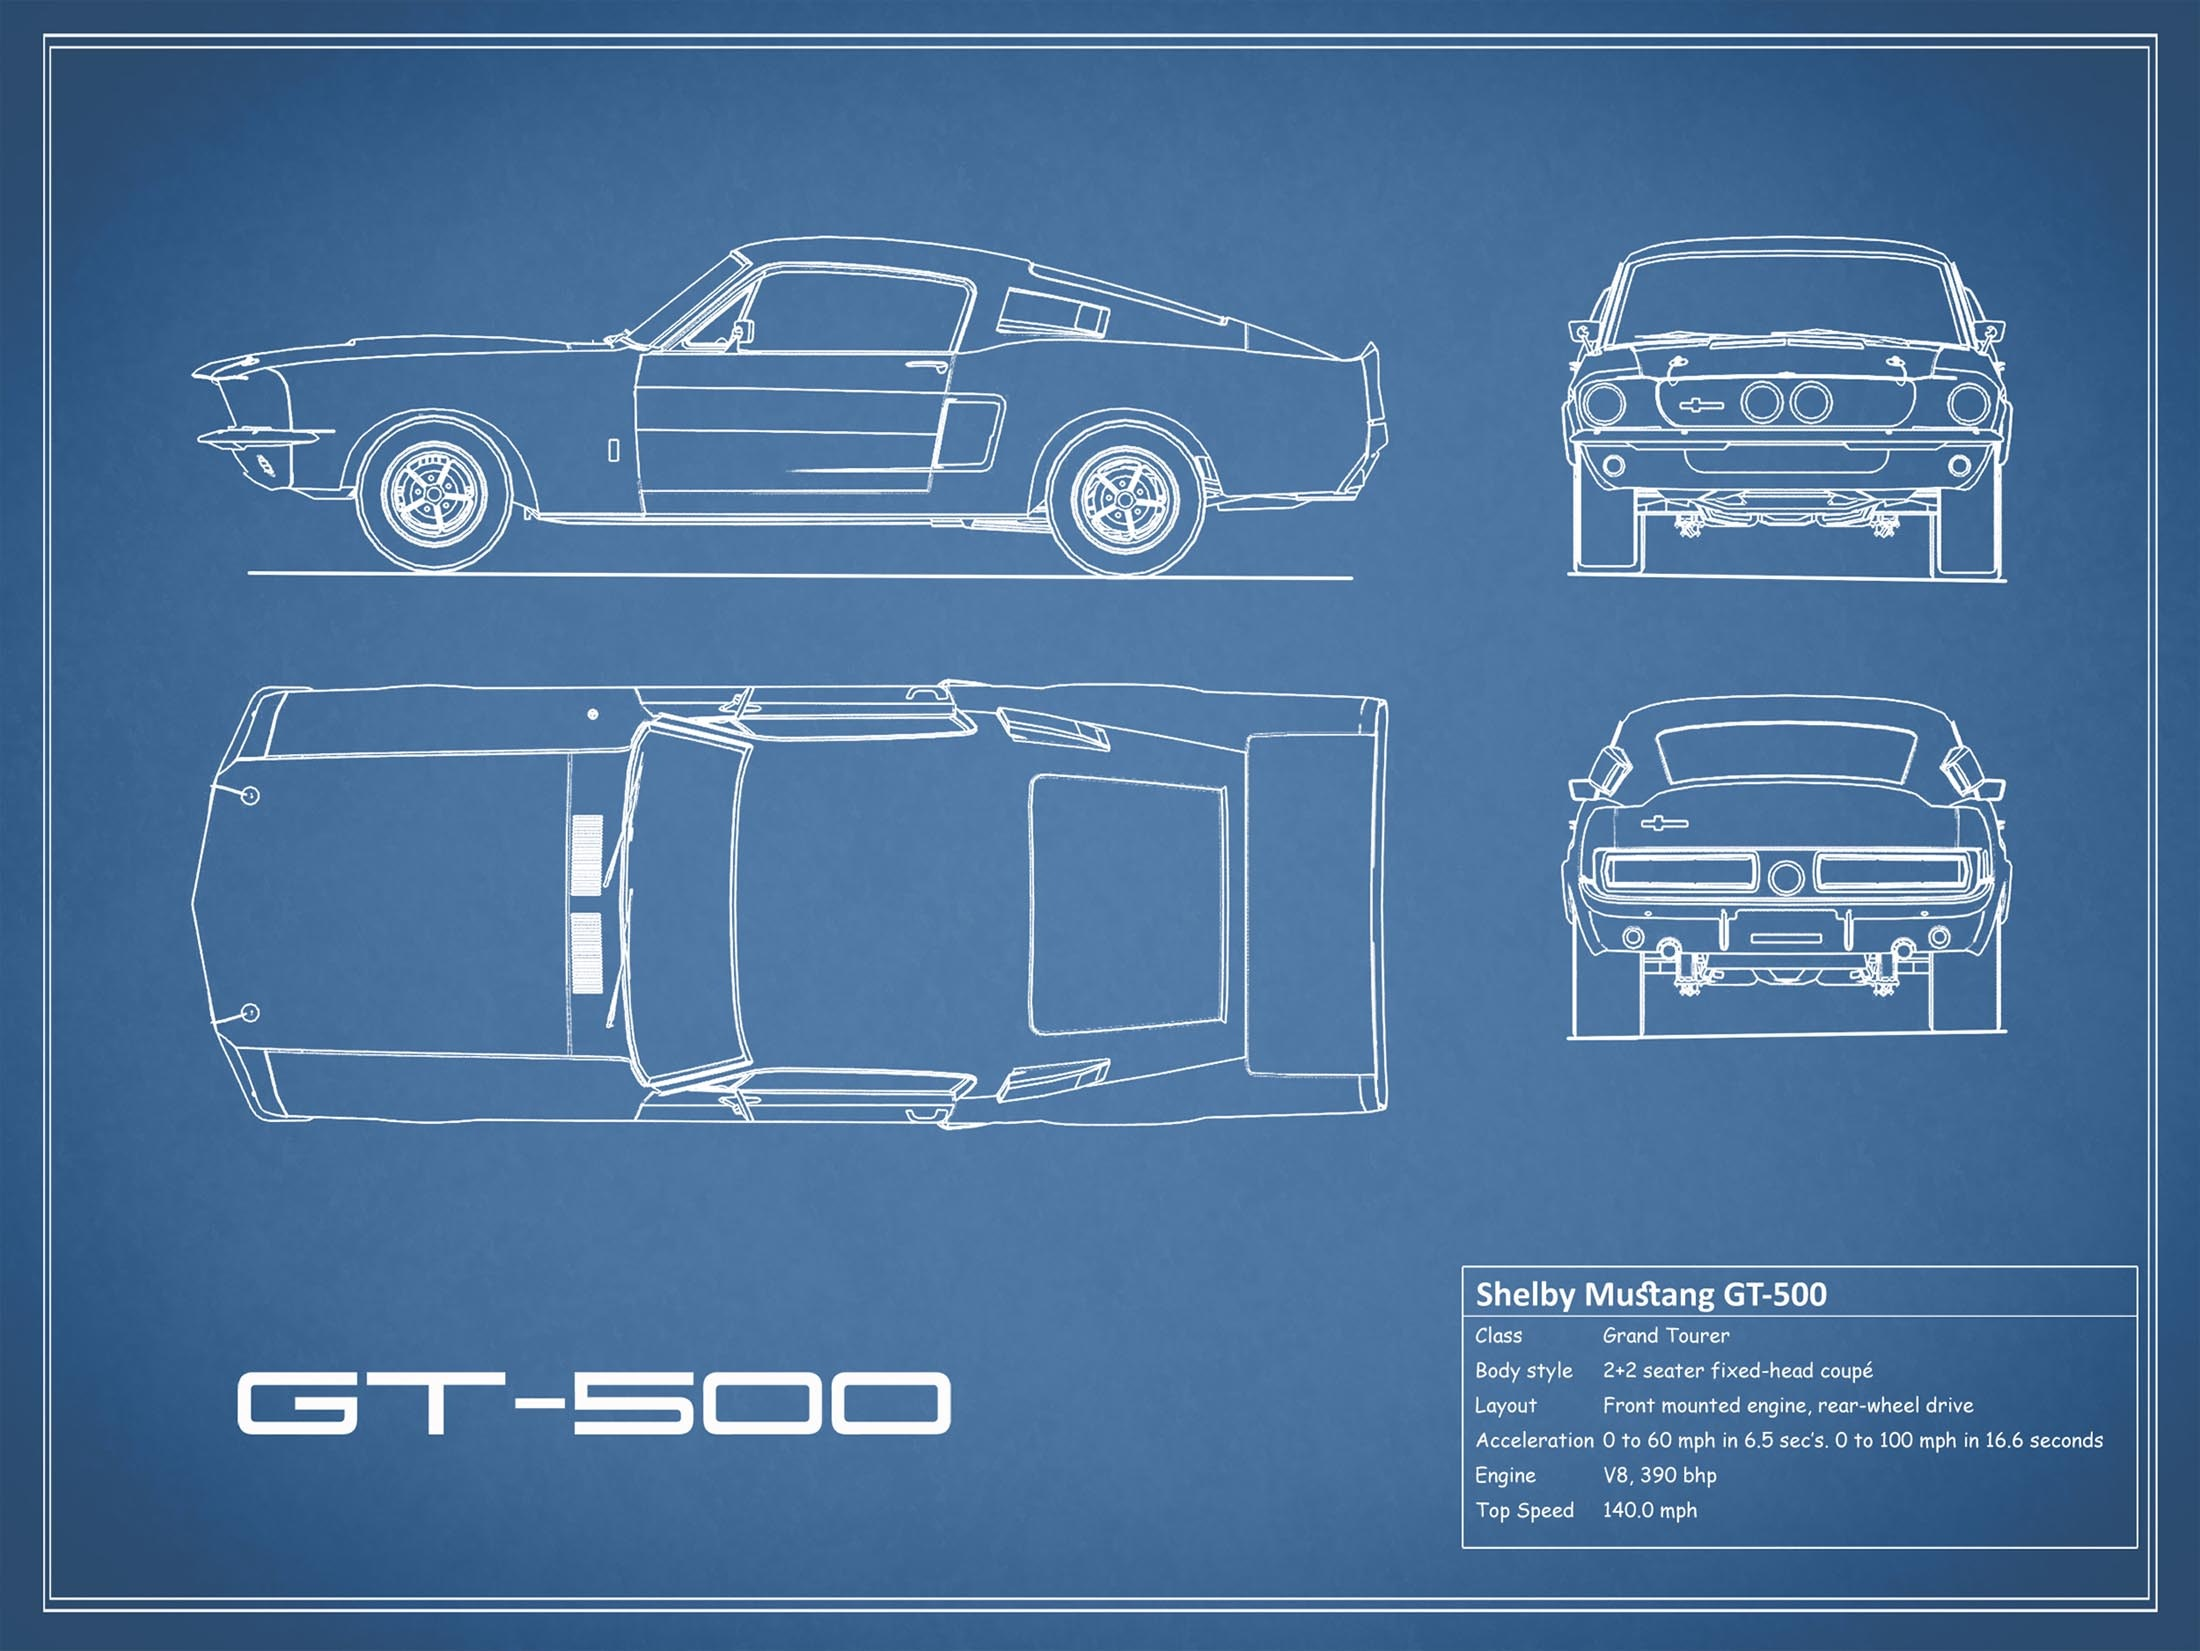 Shelby Mustang GT500 - Blue